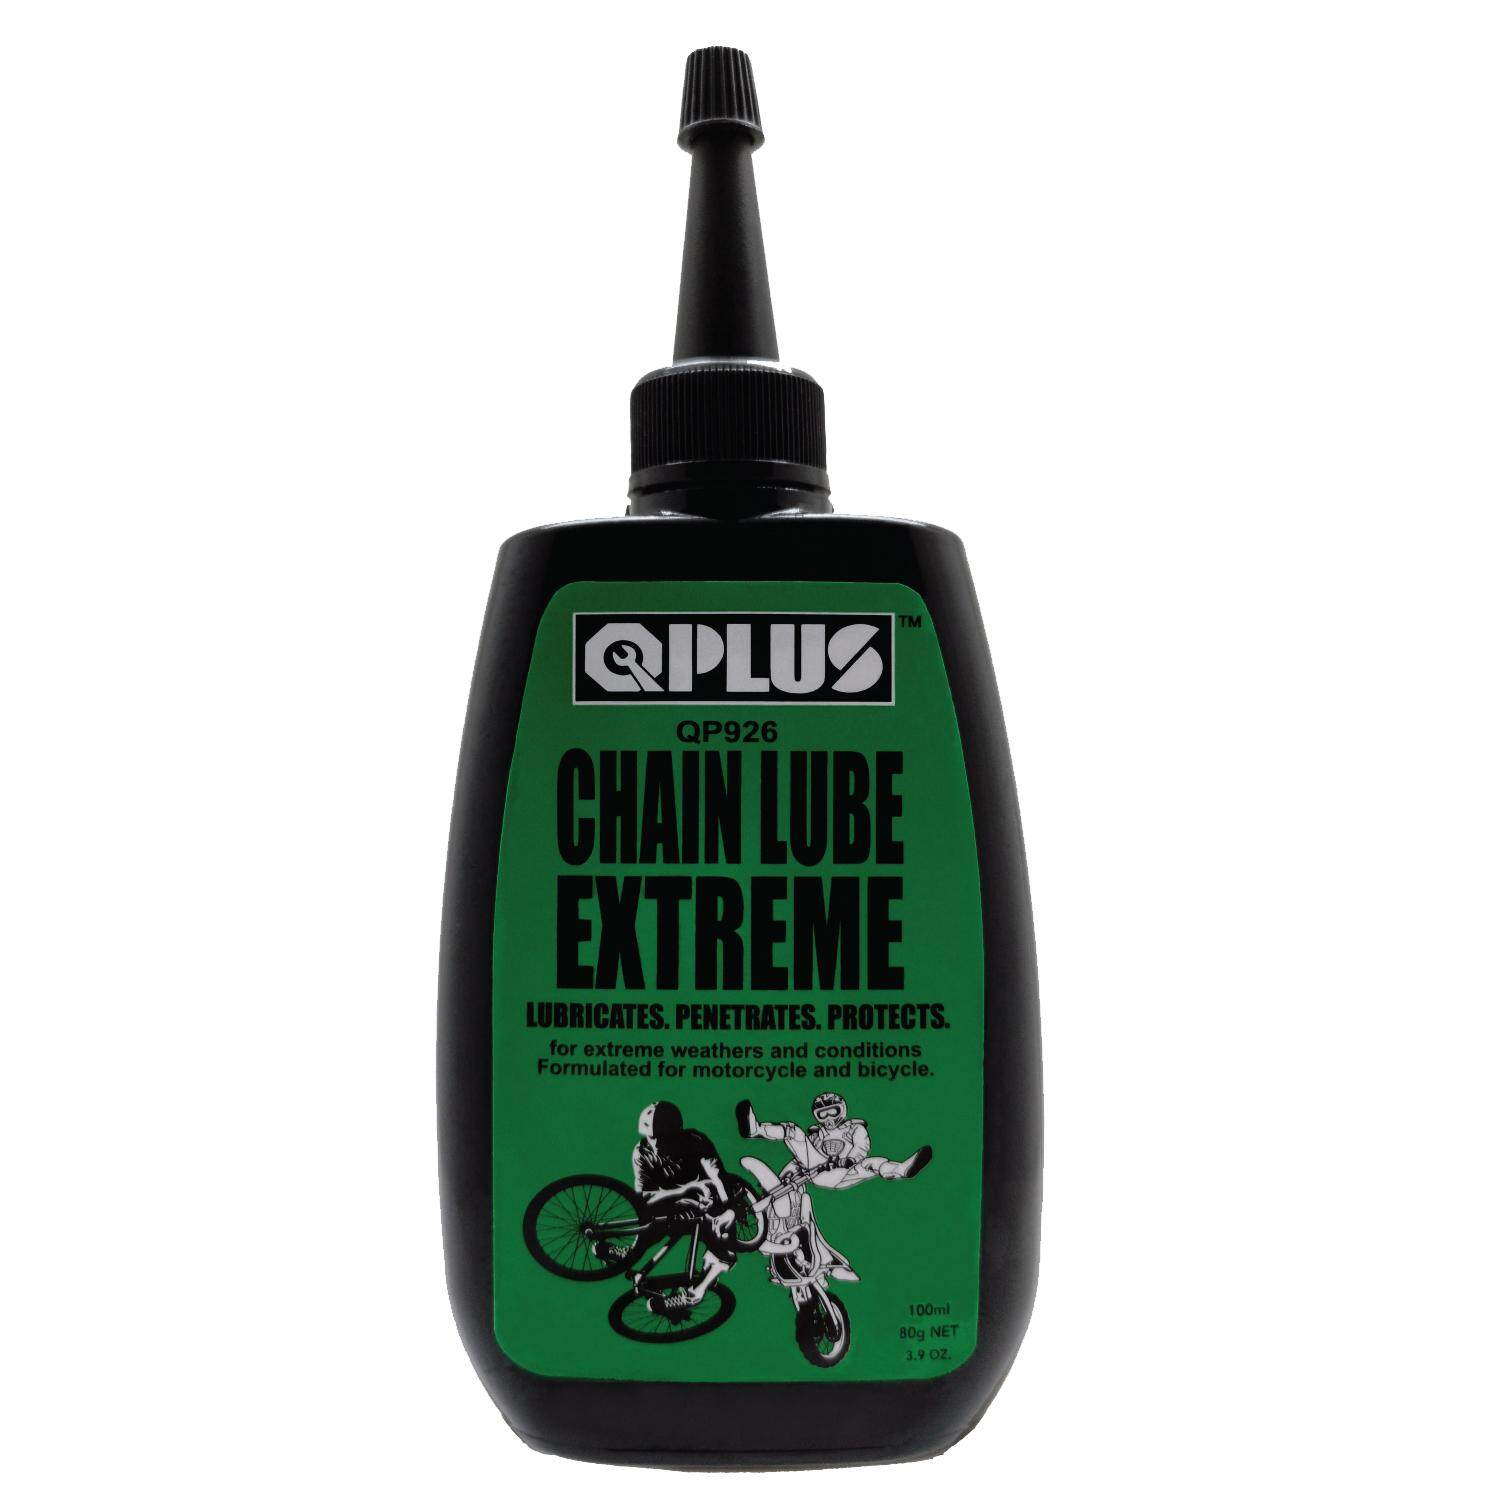 QPLUS QP926 CHAIN LUBE EXTREME/ MOTORCYCLE CHAIN/ WET LUBE MTB ROAD BIKE (100ml) (CHAIN MAINTENANCE)